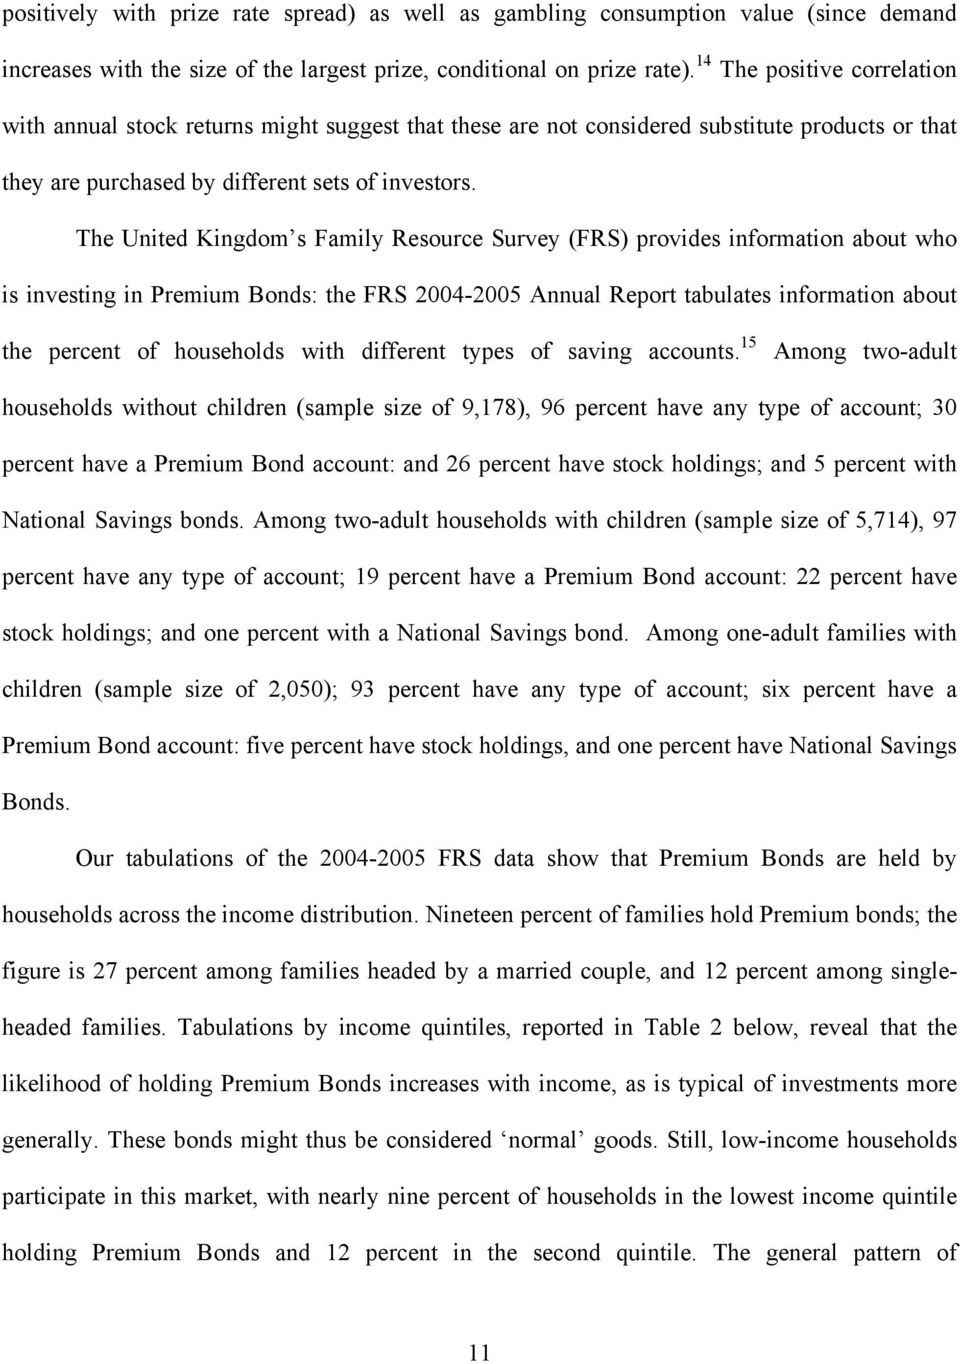 The United Kingdom s Family Resource Survey (FRS) provides information about who is investing in Premium Bonds: the FRS 2004-2005 Annual Report tabulates information about the percent of households